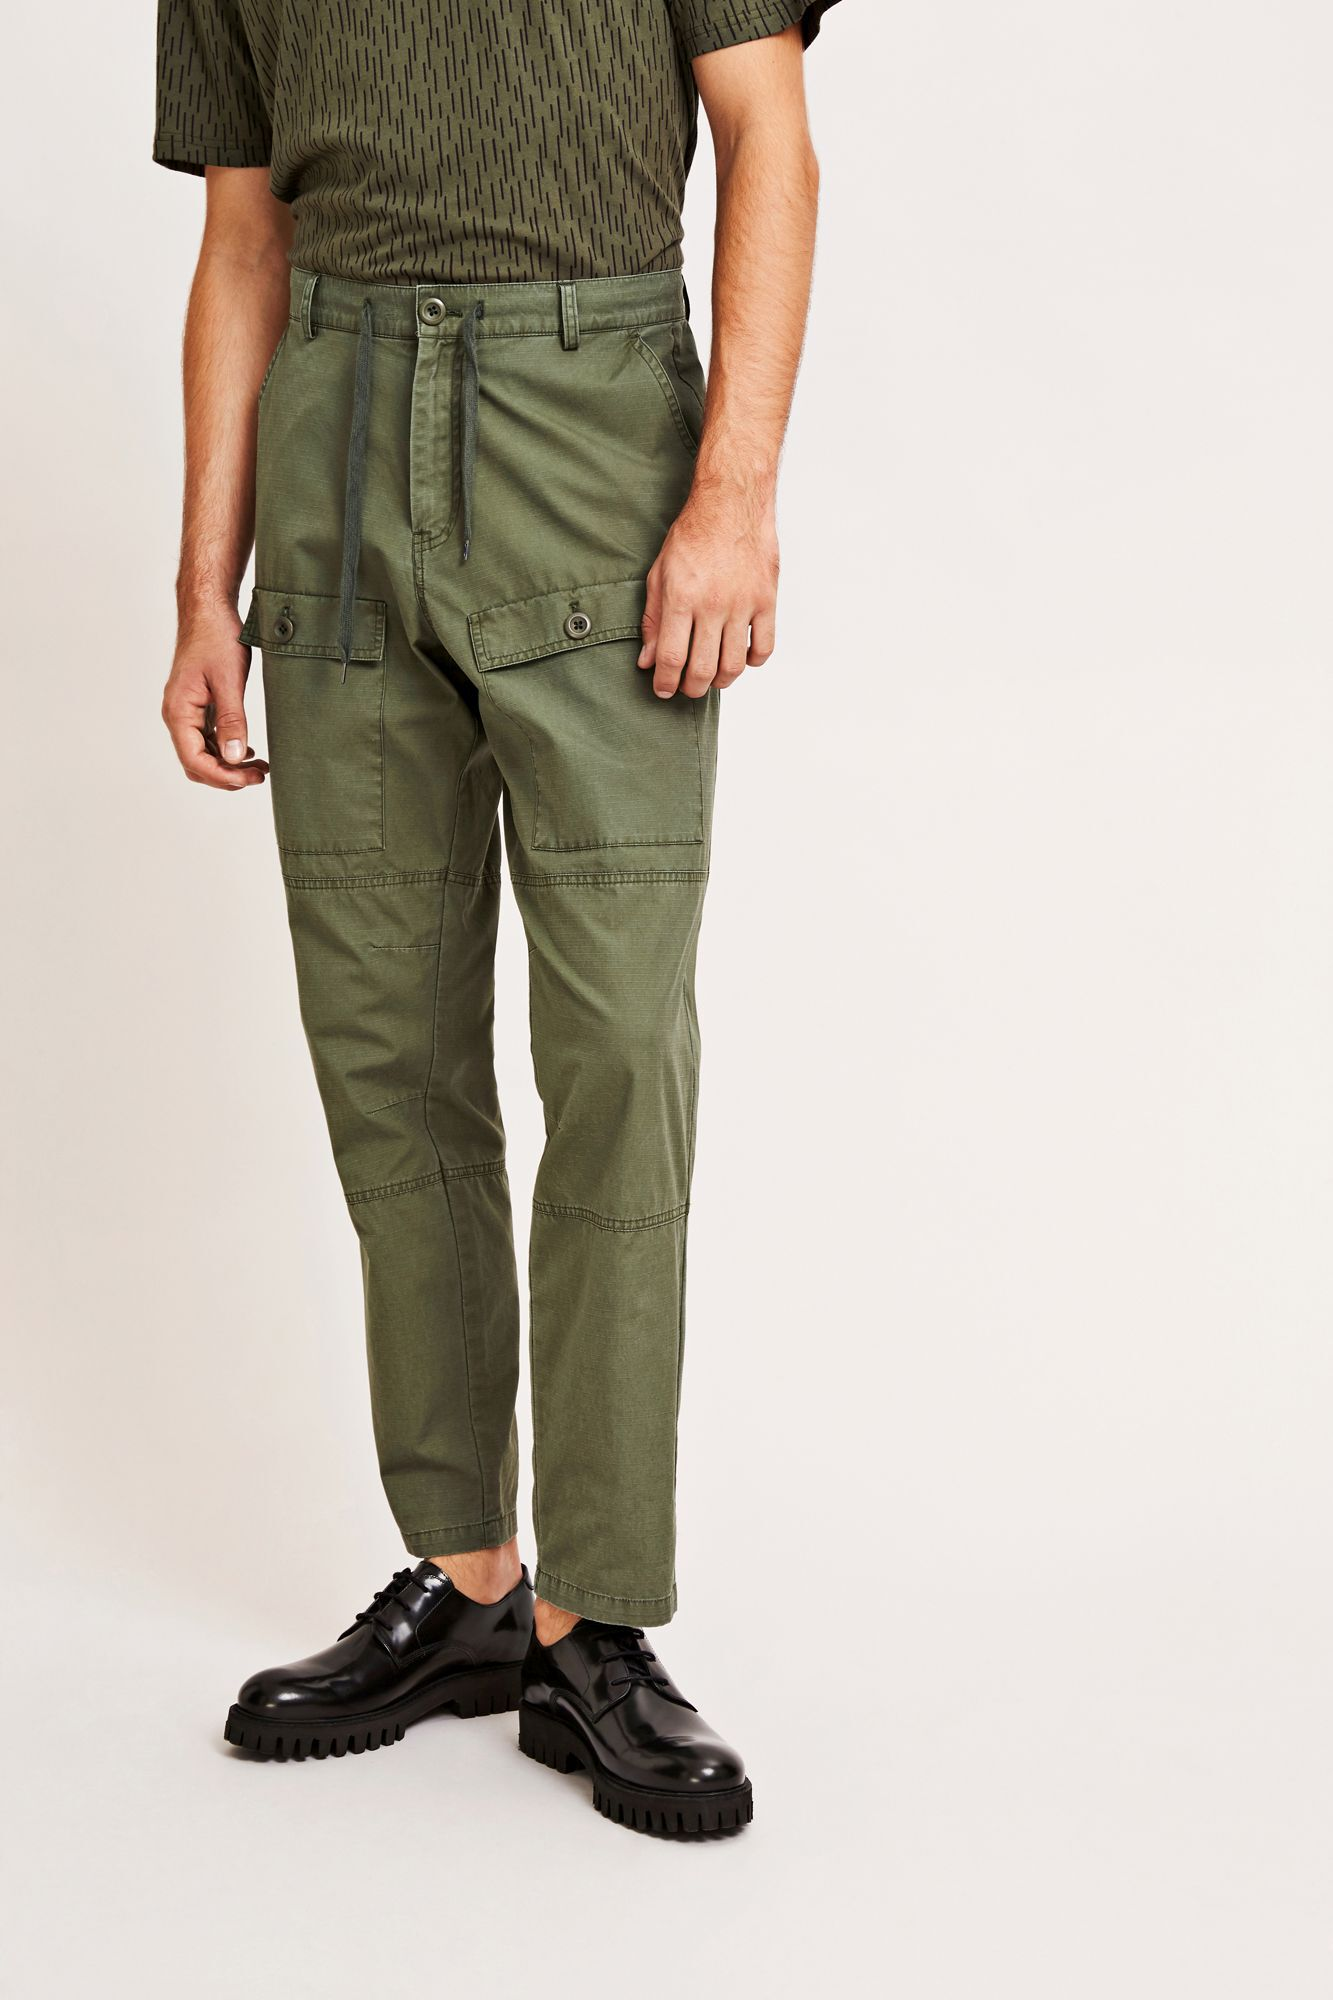 Apaches pants 9747